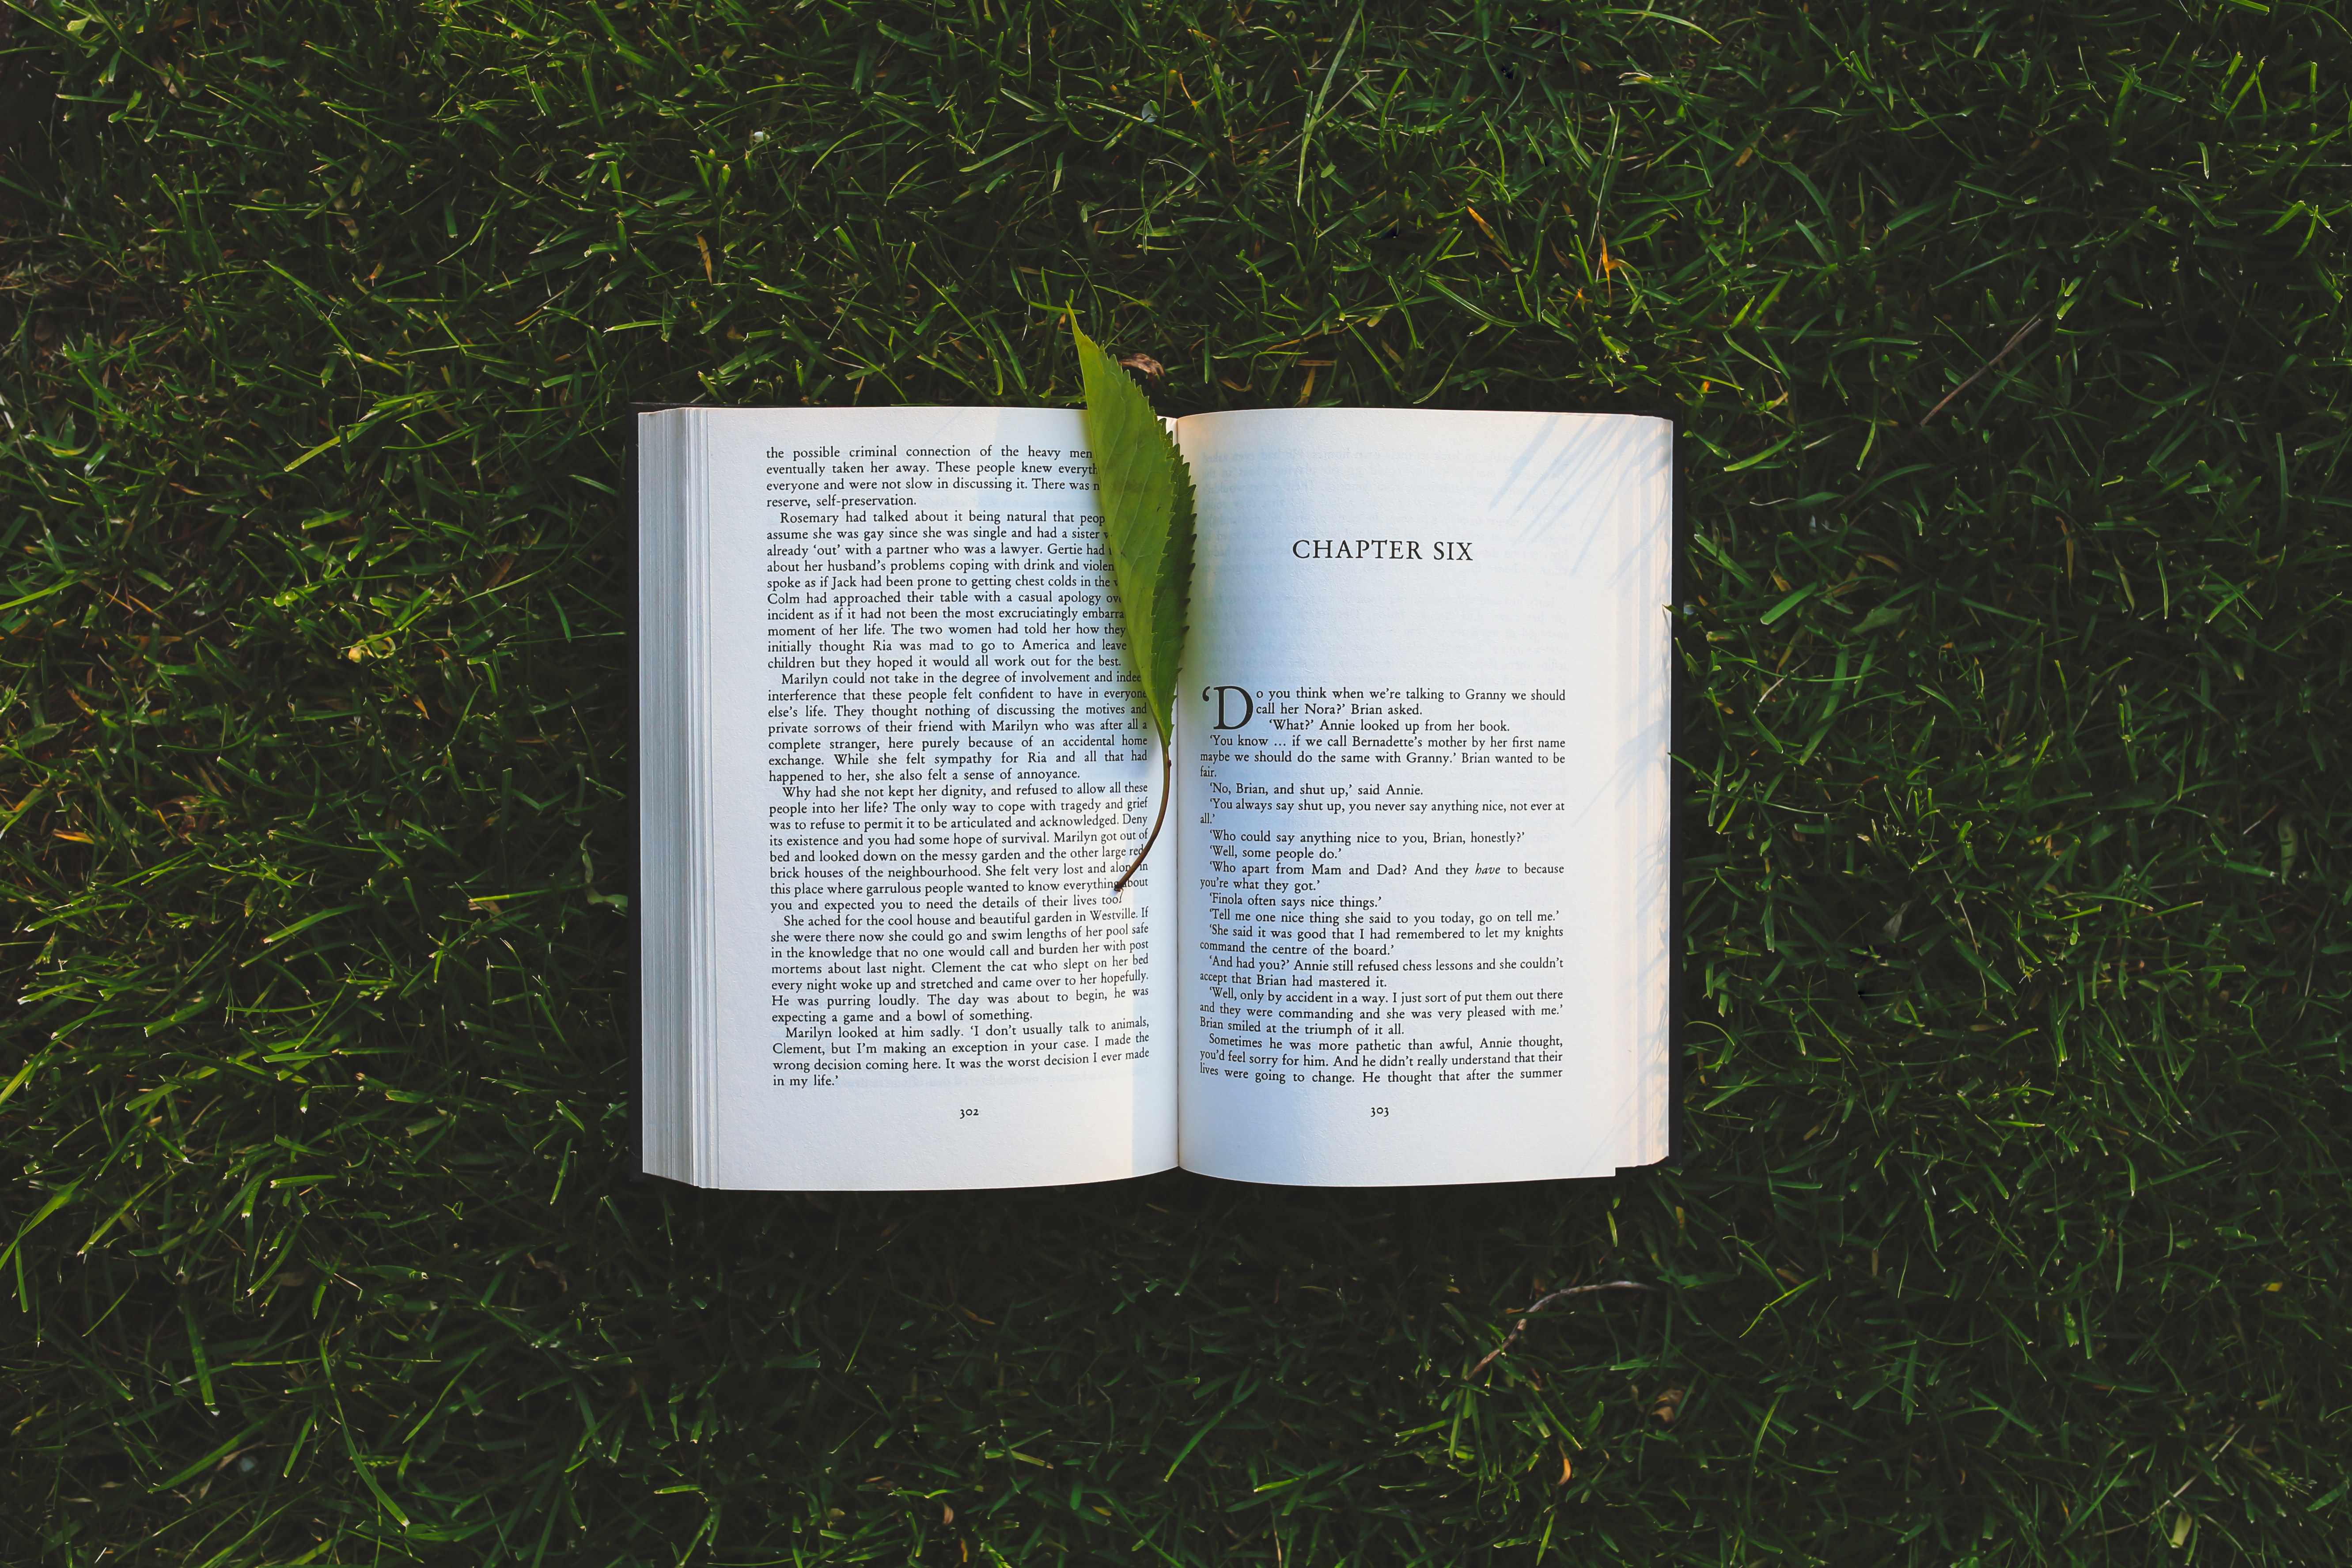 Book: chapter six, Book, Letters, Tree, Summer, HQ Photo